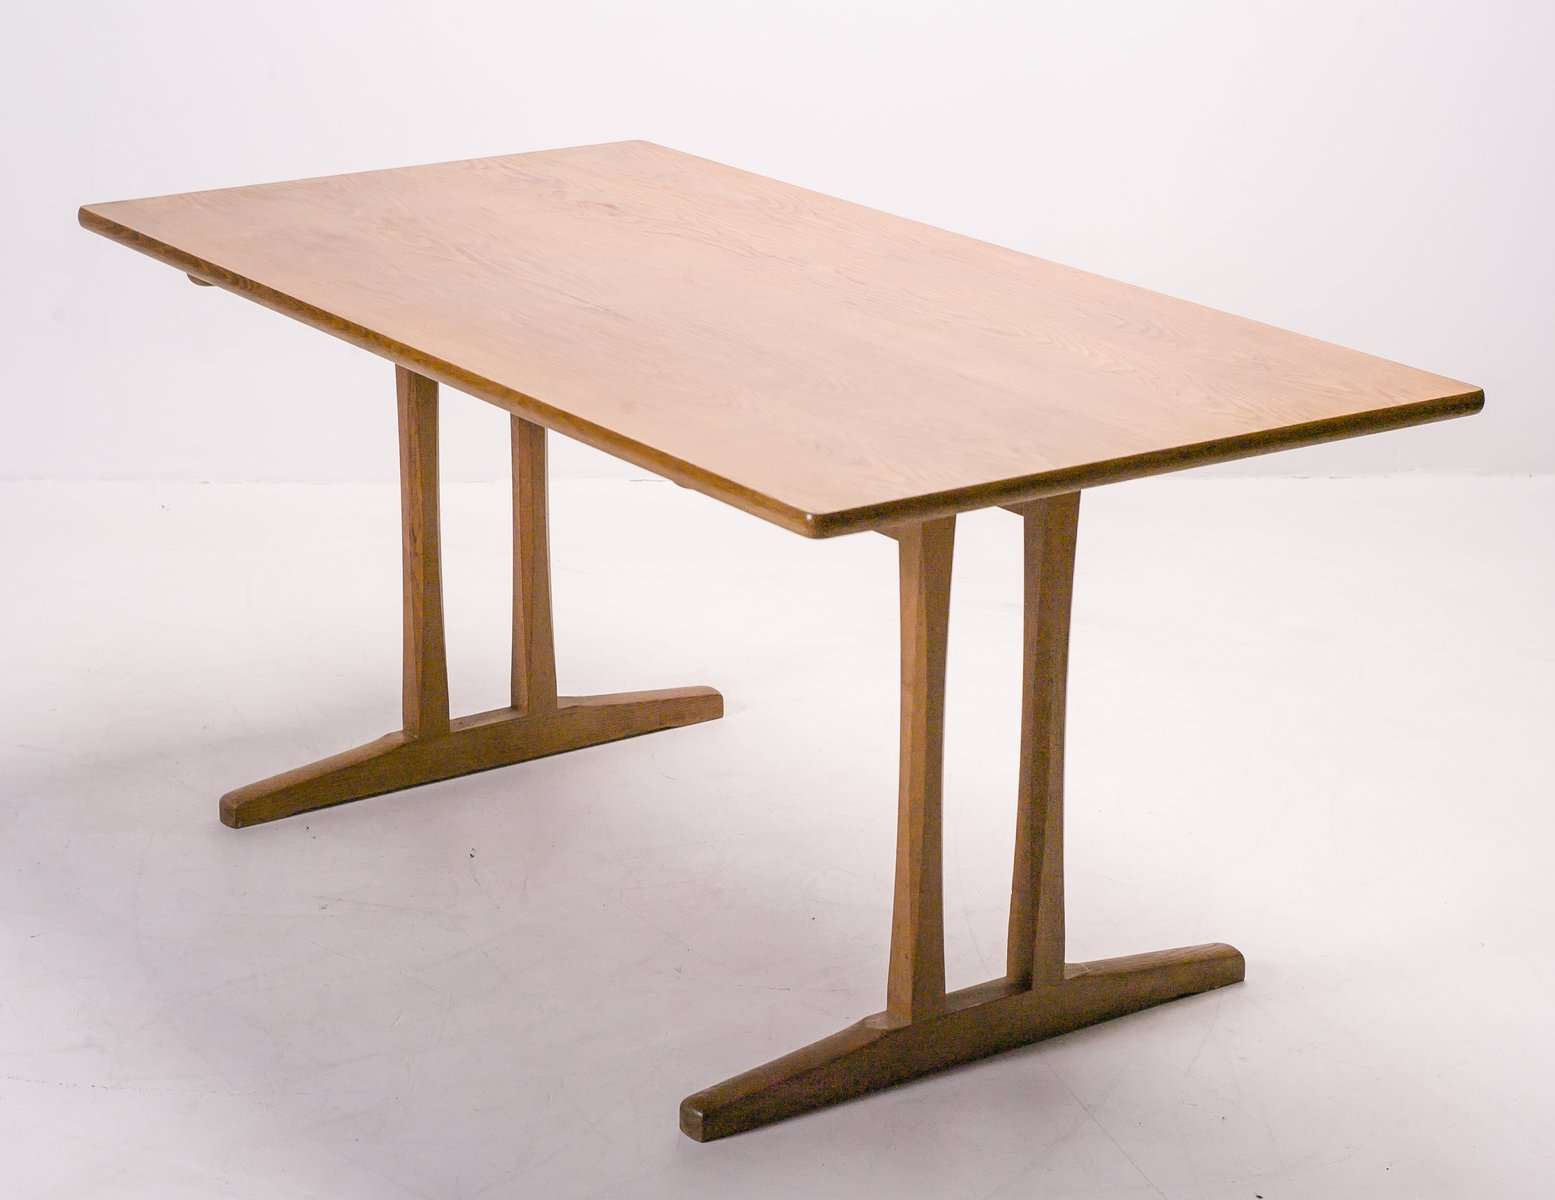 C18 Shaker Table By Børge Mogensen For FDB, 1969